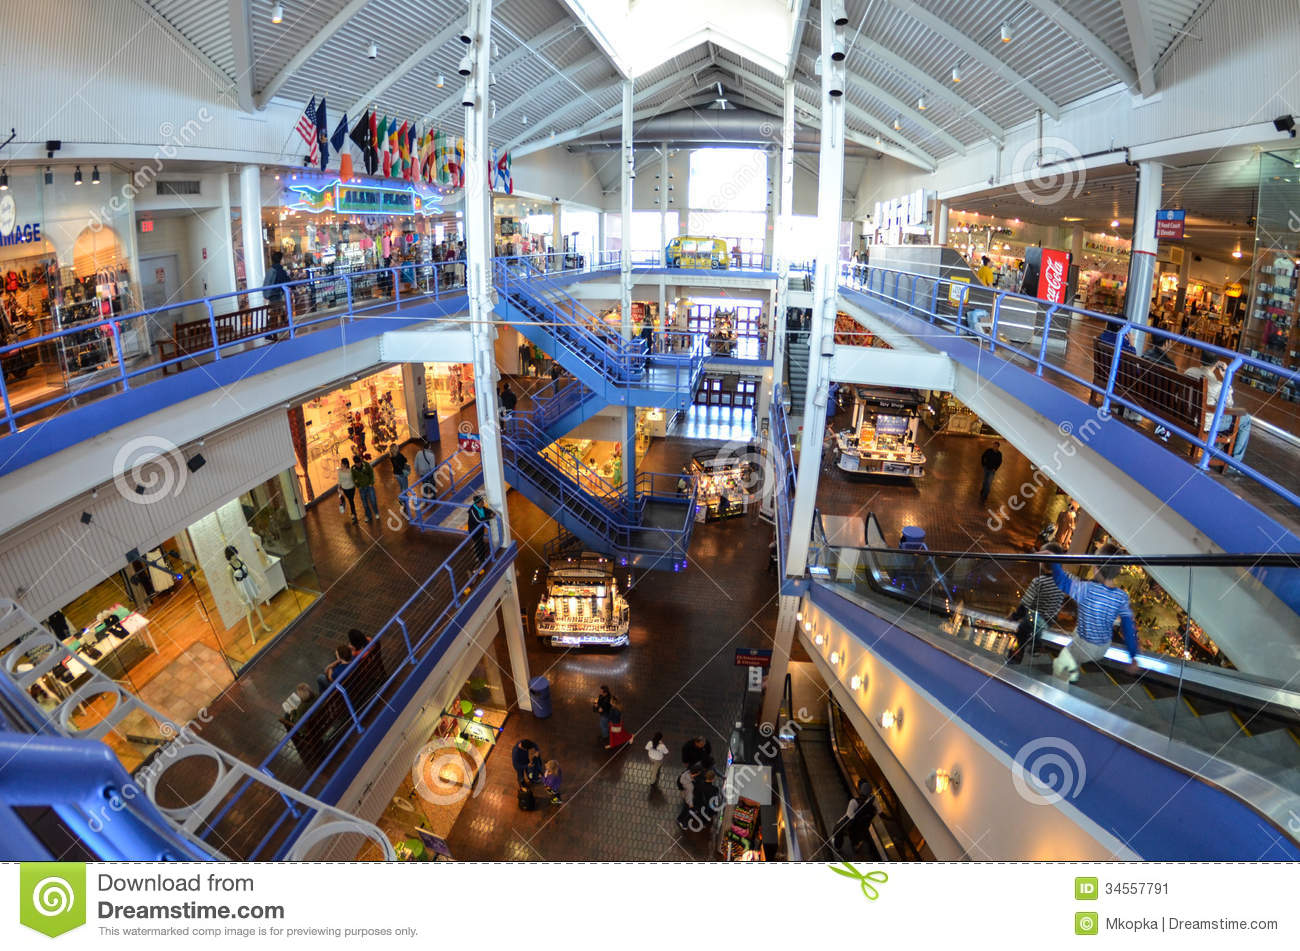 South Street Seaport Mall Shops Editorial Photo  Image Of. Prostate Cancer Clinical Trials. Medical Lawsuit Settlements Cisco Ccna Class. Was John Adams A Lawyer Piano Movers St Louis. Cash Advance Loan Online Hands Free Solutions. Landscaping Architecture Schools. Cancel Free Credit Score Membership. Refrigerator Repair Scottsdale. Incapacidad Permanente Total